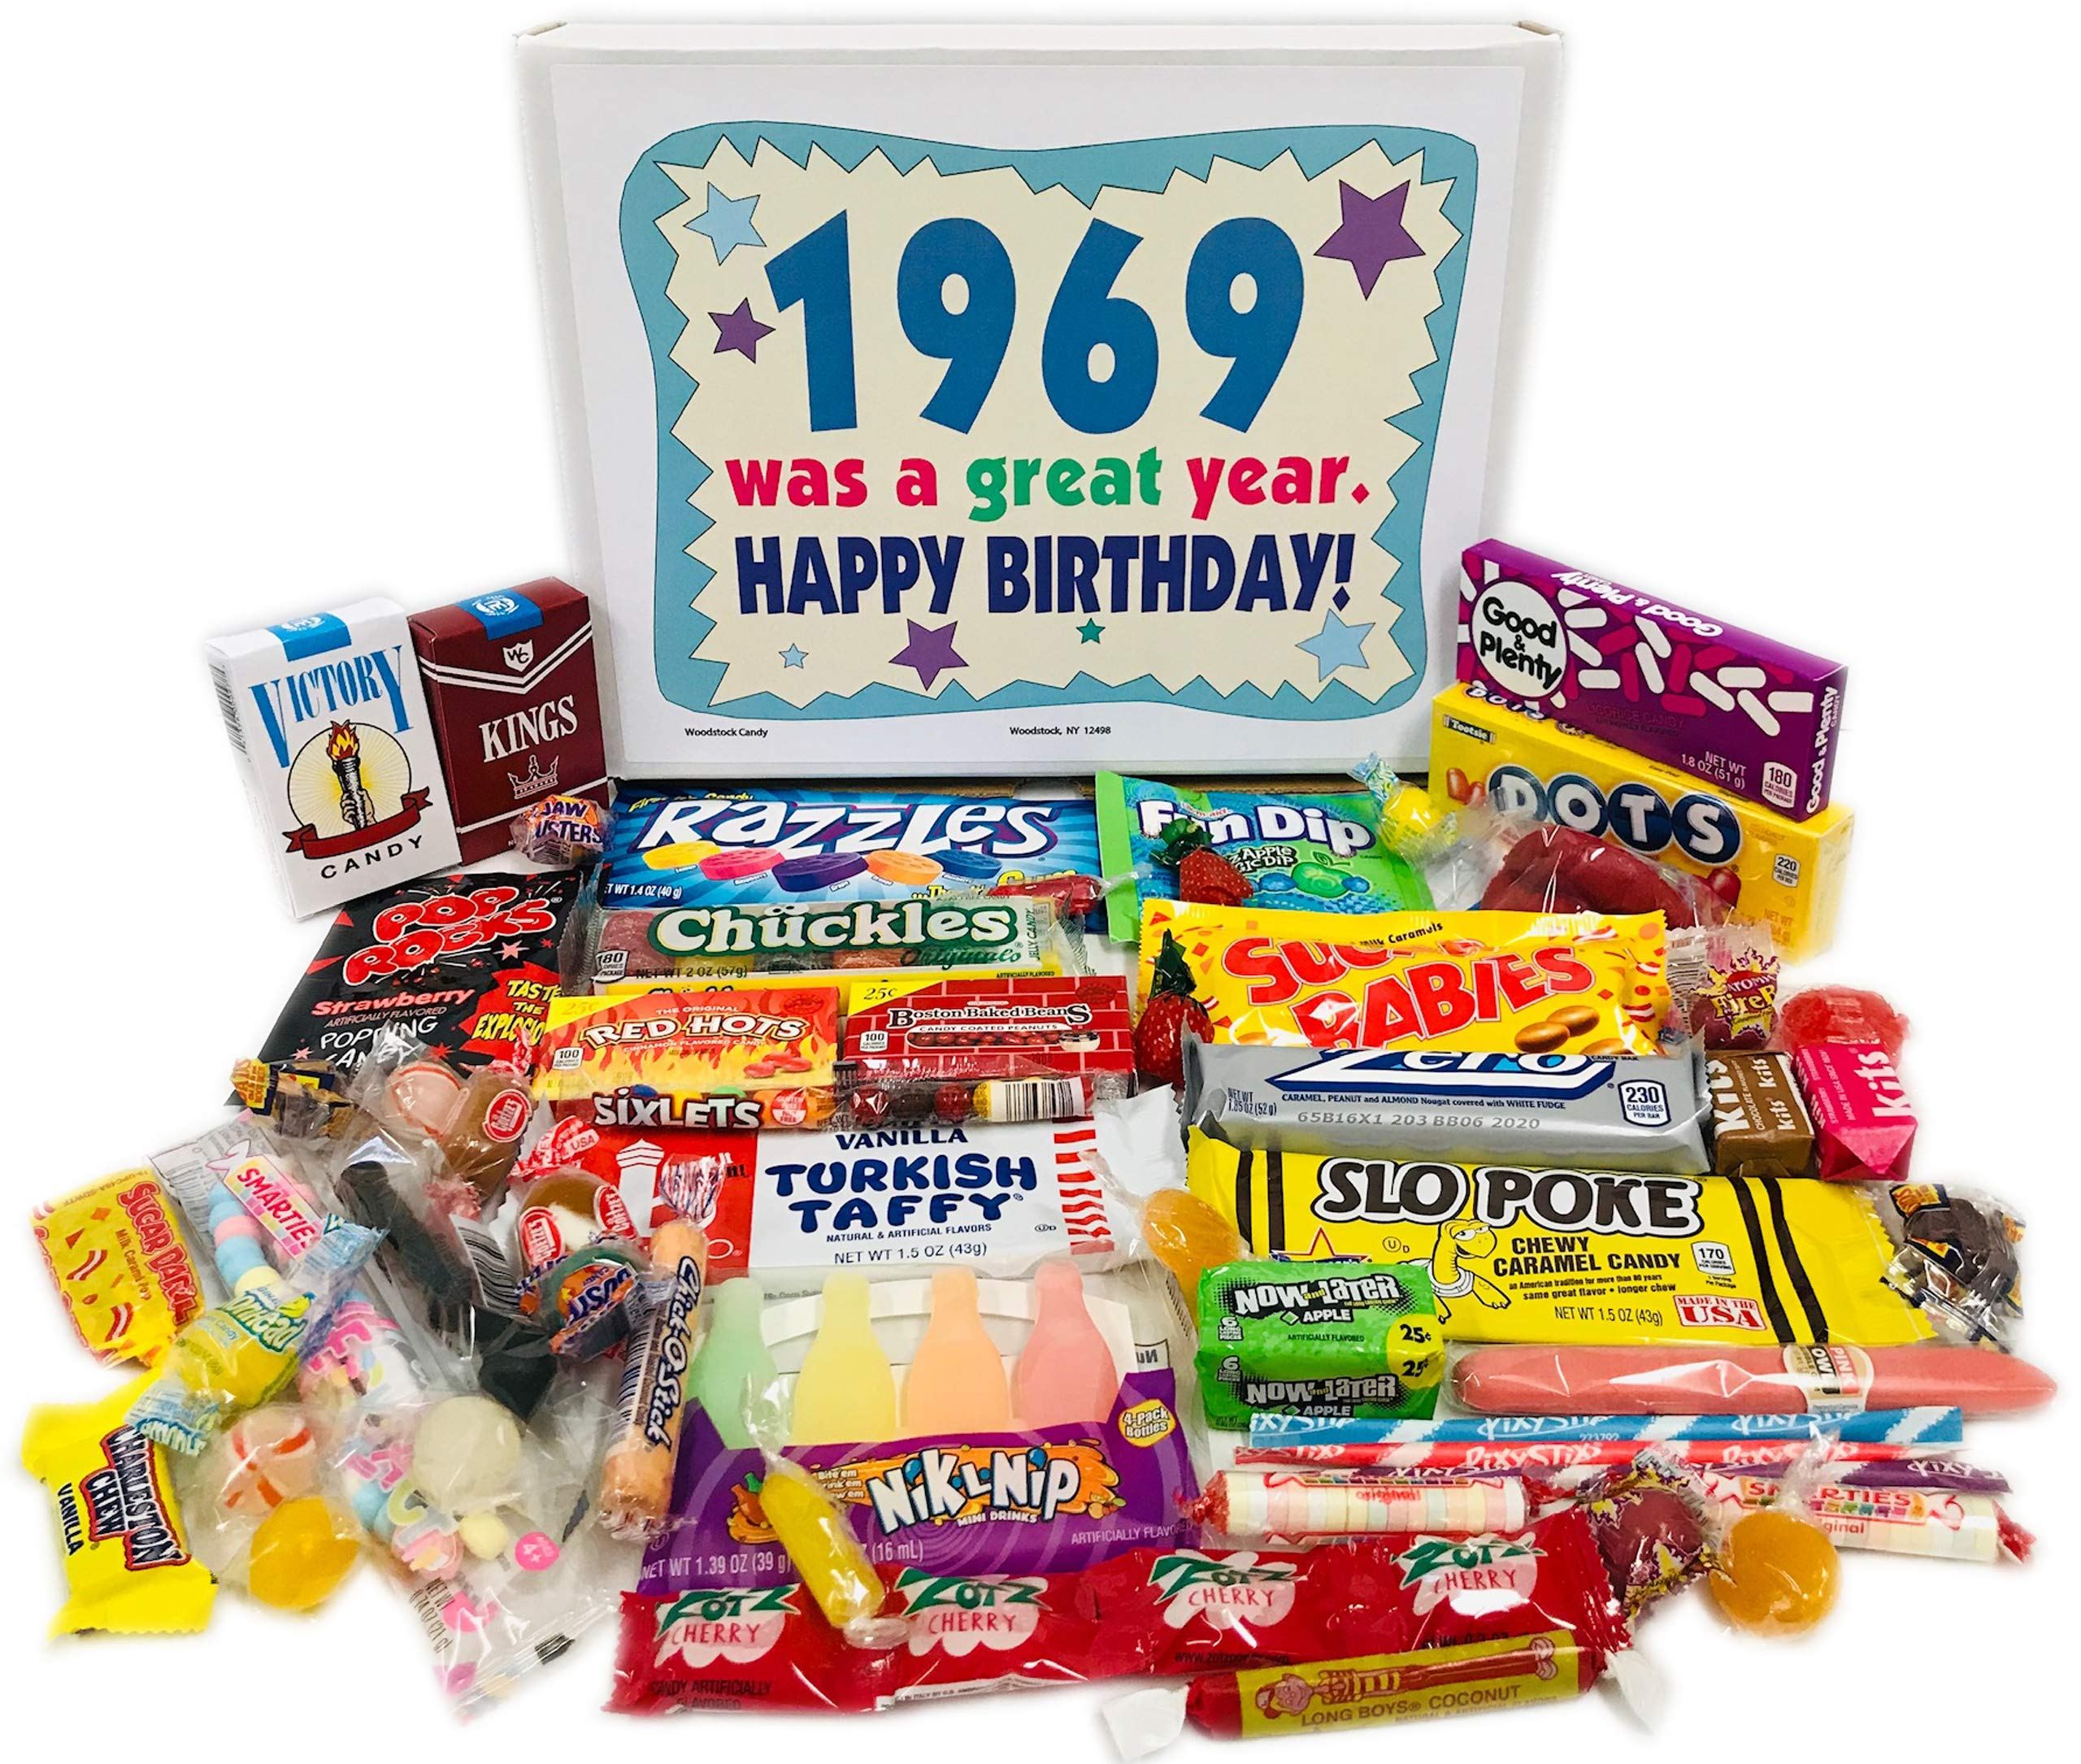 Woodstock Candy ~ 50th Birthday Gift Box Vintage Candy Assortment from Childhood for 50 Year Old Man or Woman Born 1969 by Woodstock Candy